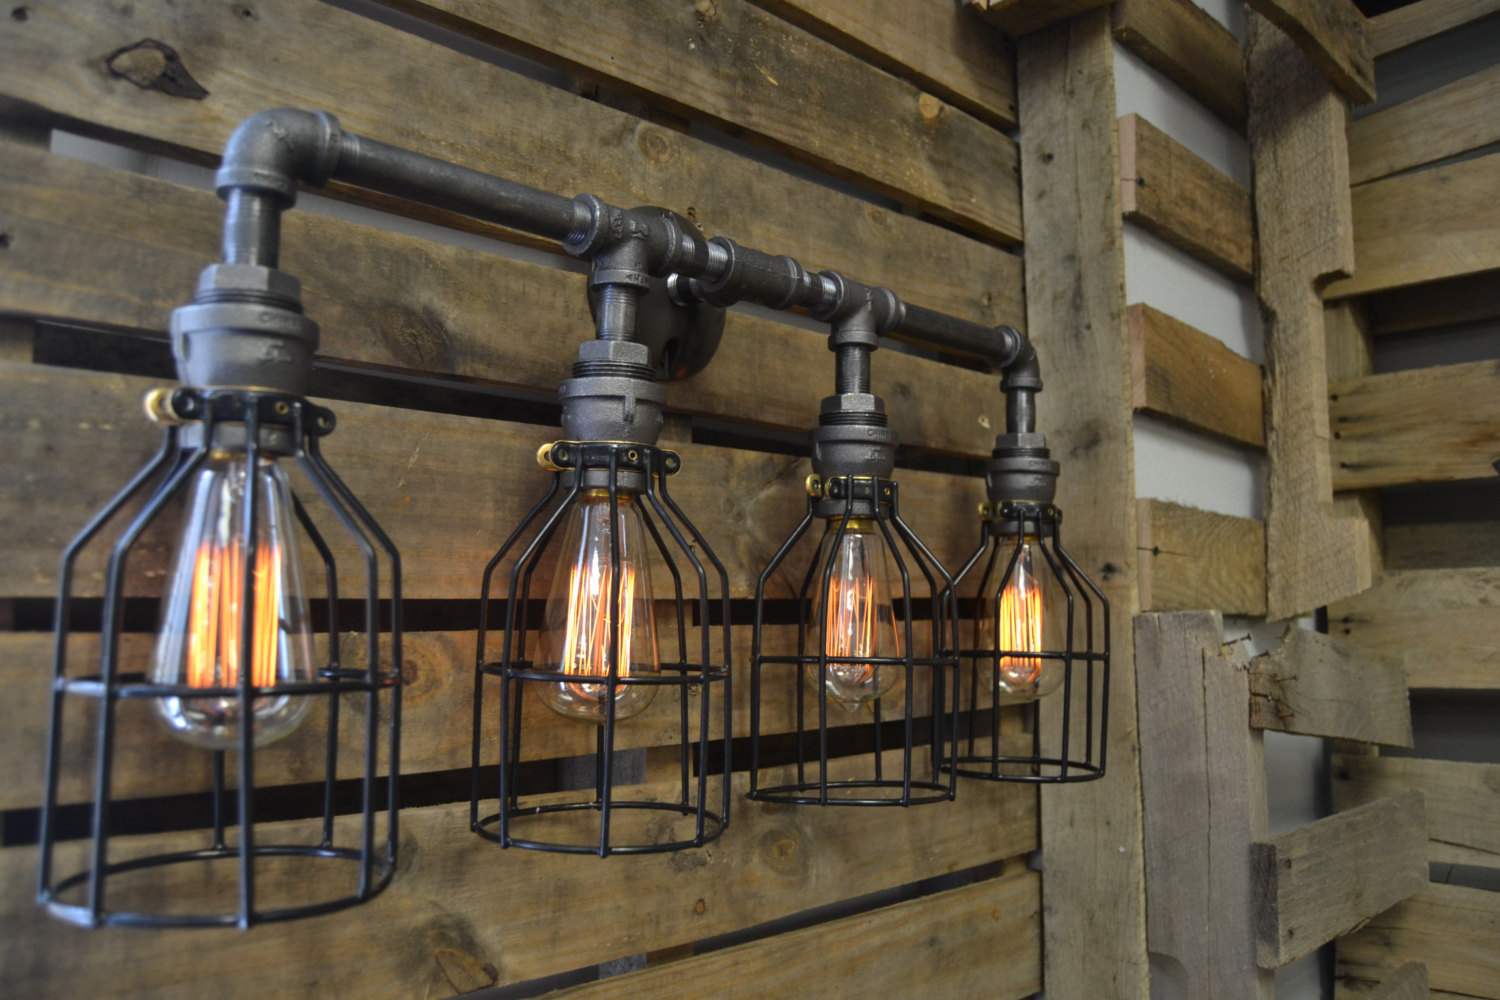 Industrial Decor Lighting Bringing An Industrial Feel To Home Décor